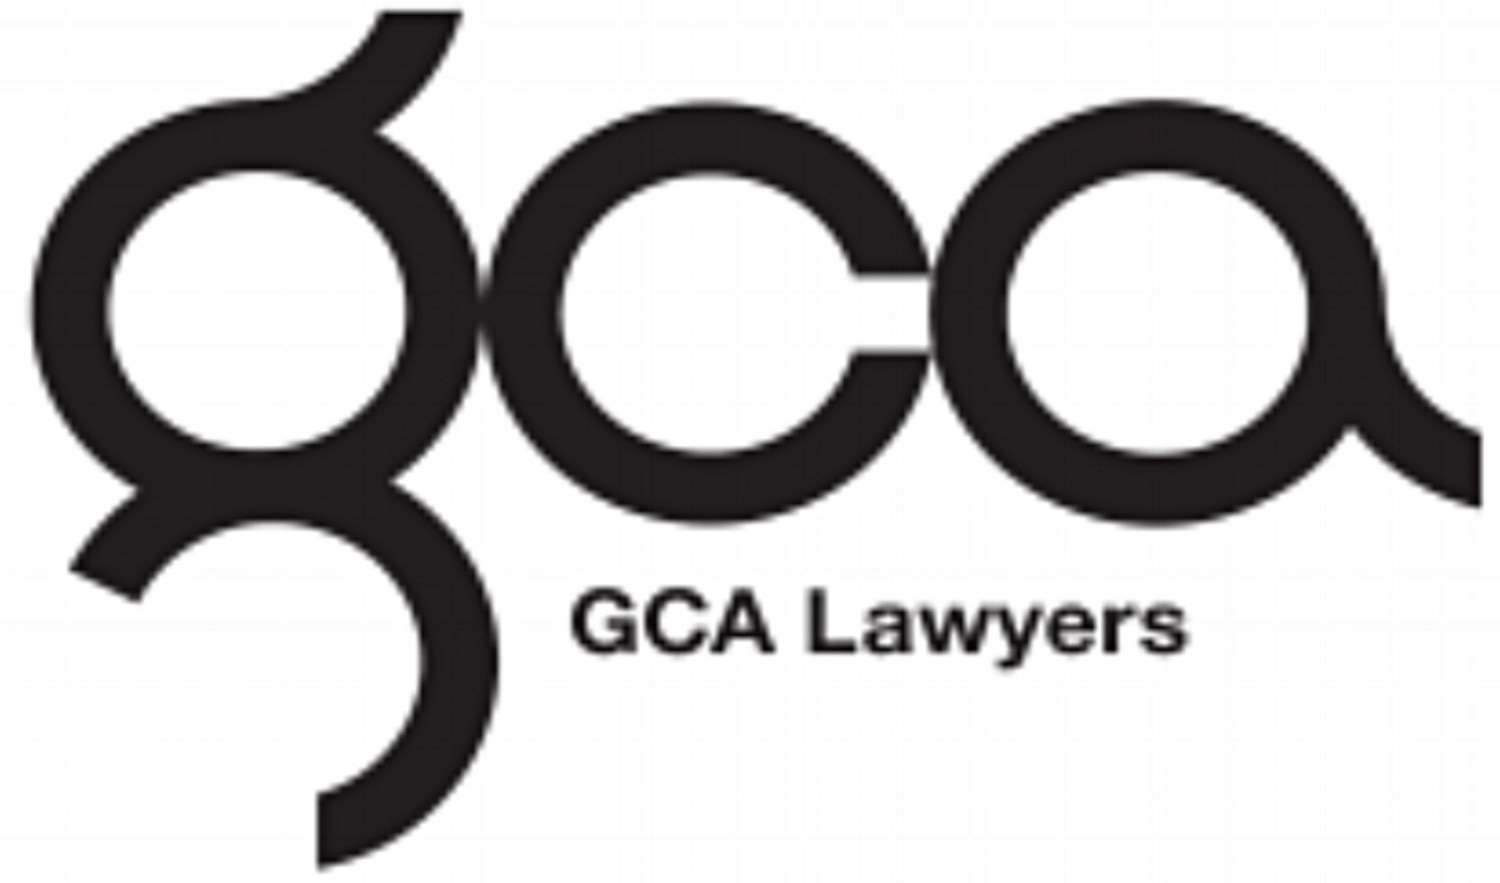 GCA Lawyers